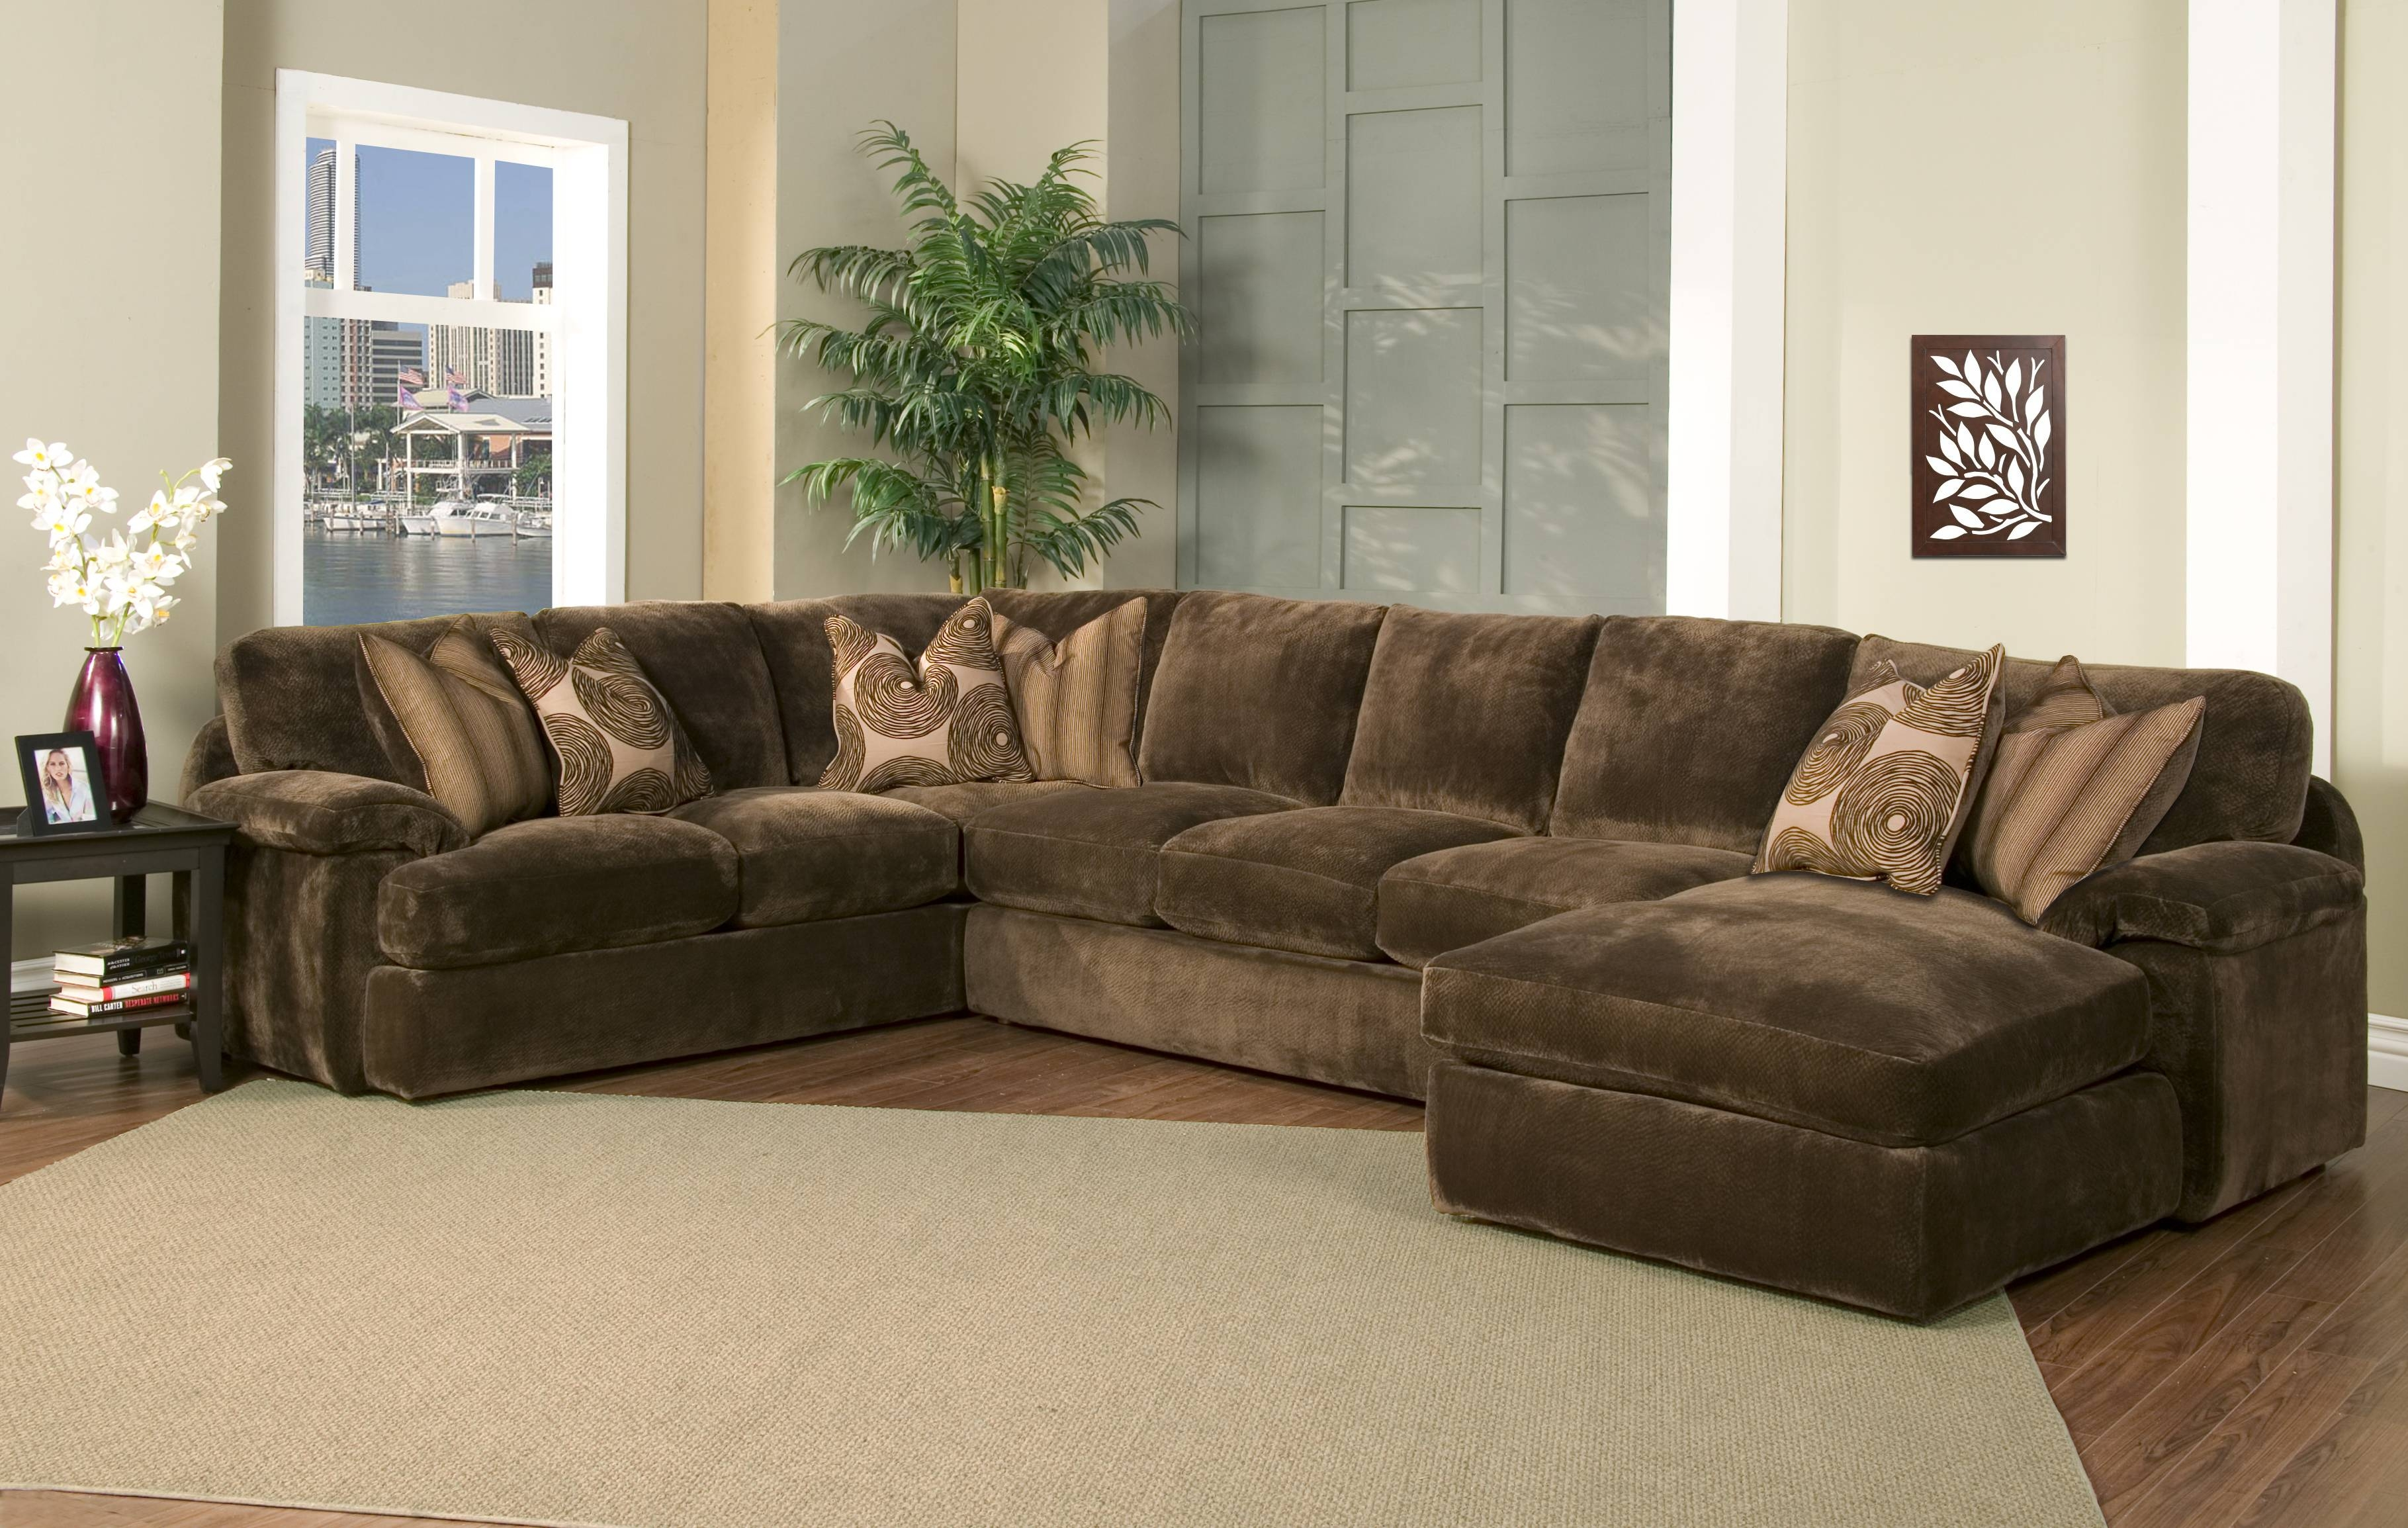 Feather Down Sofa Inspirational Down Feather Sectional Sofa 47 On within Goose Down Sectional Sofas ( : goose down sectional sofa - Sectionals, Sofas & Couches